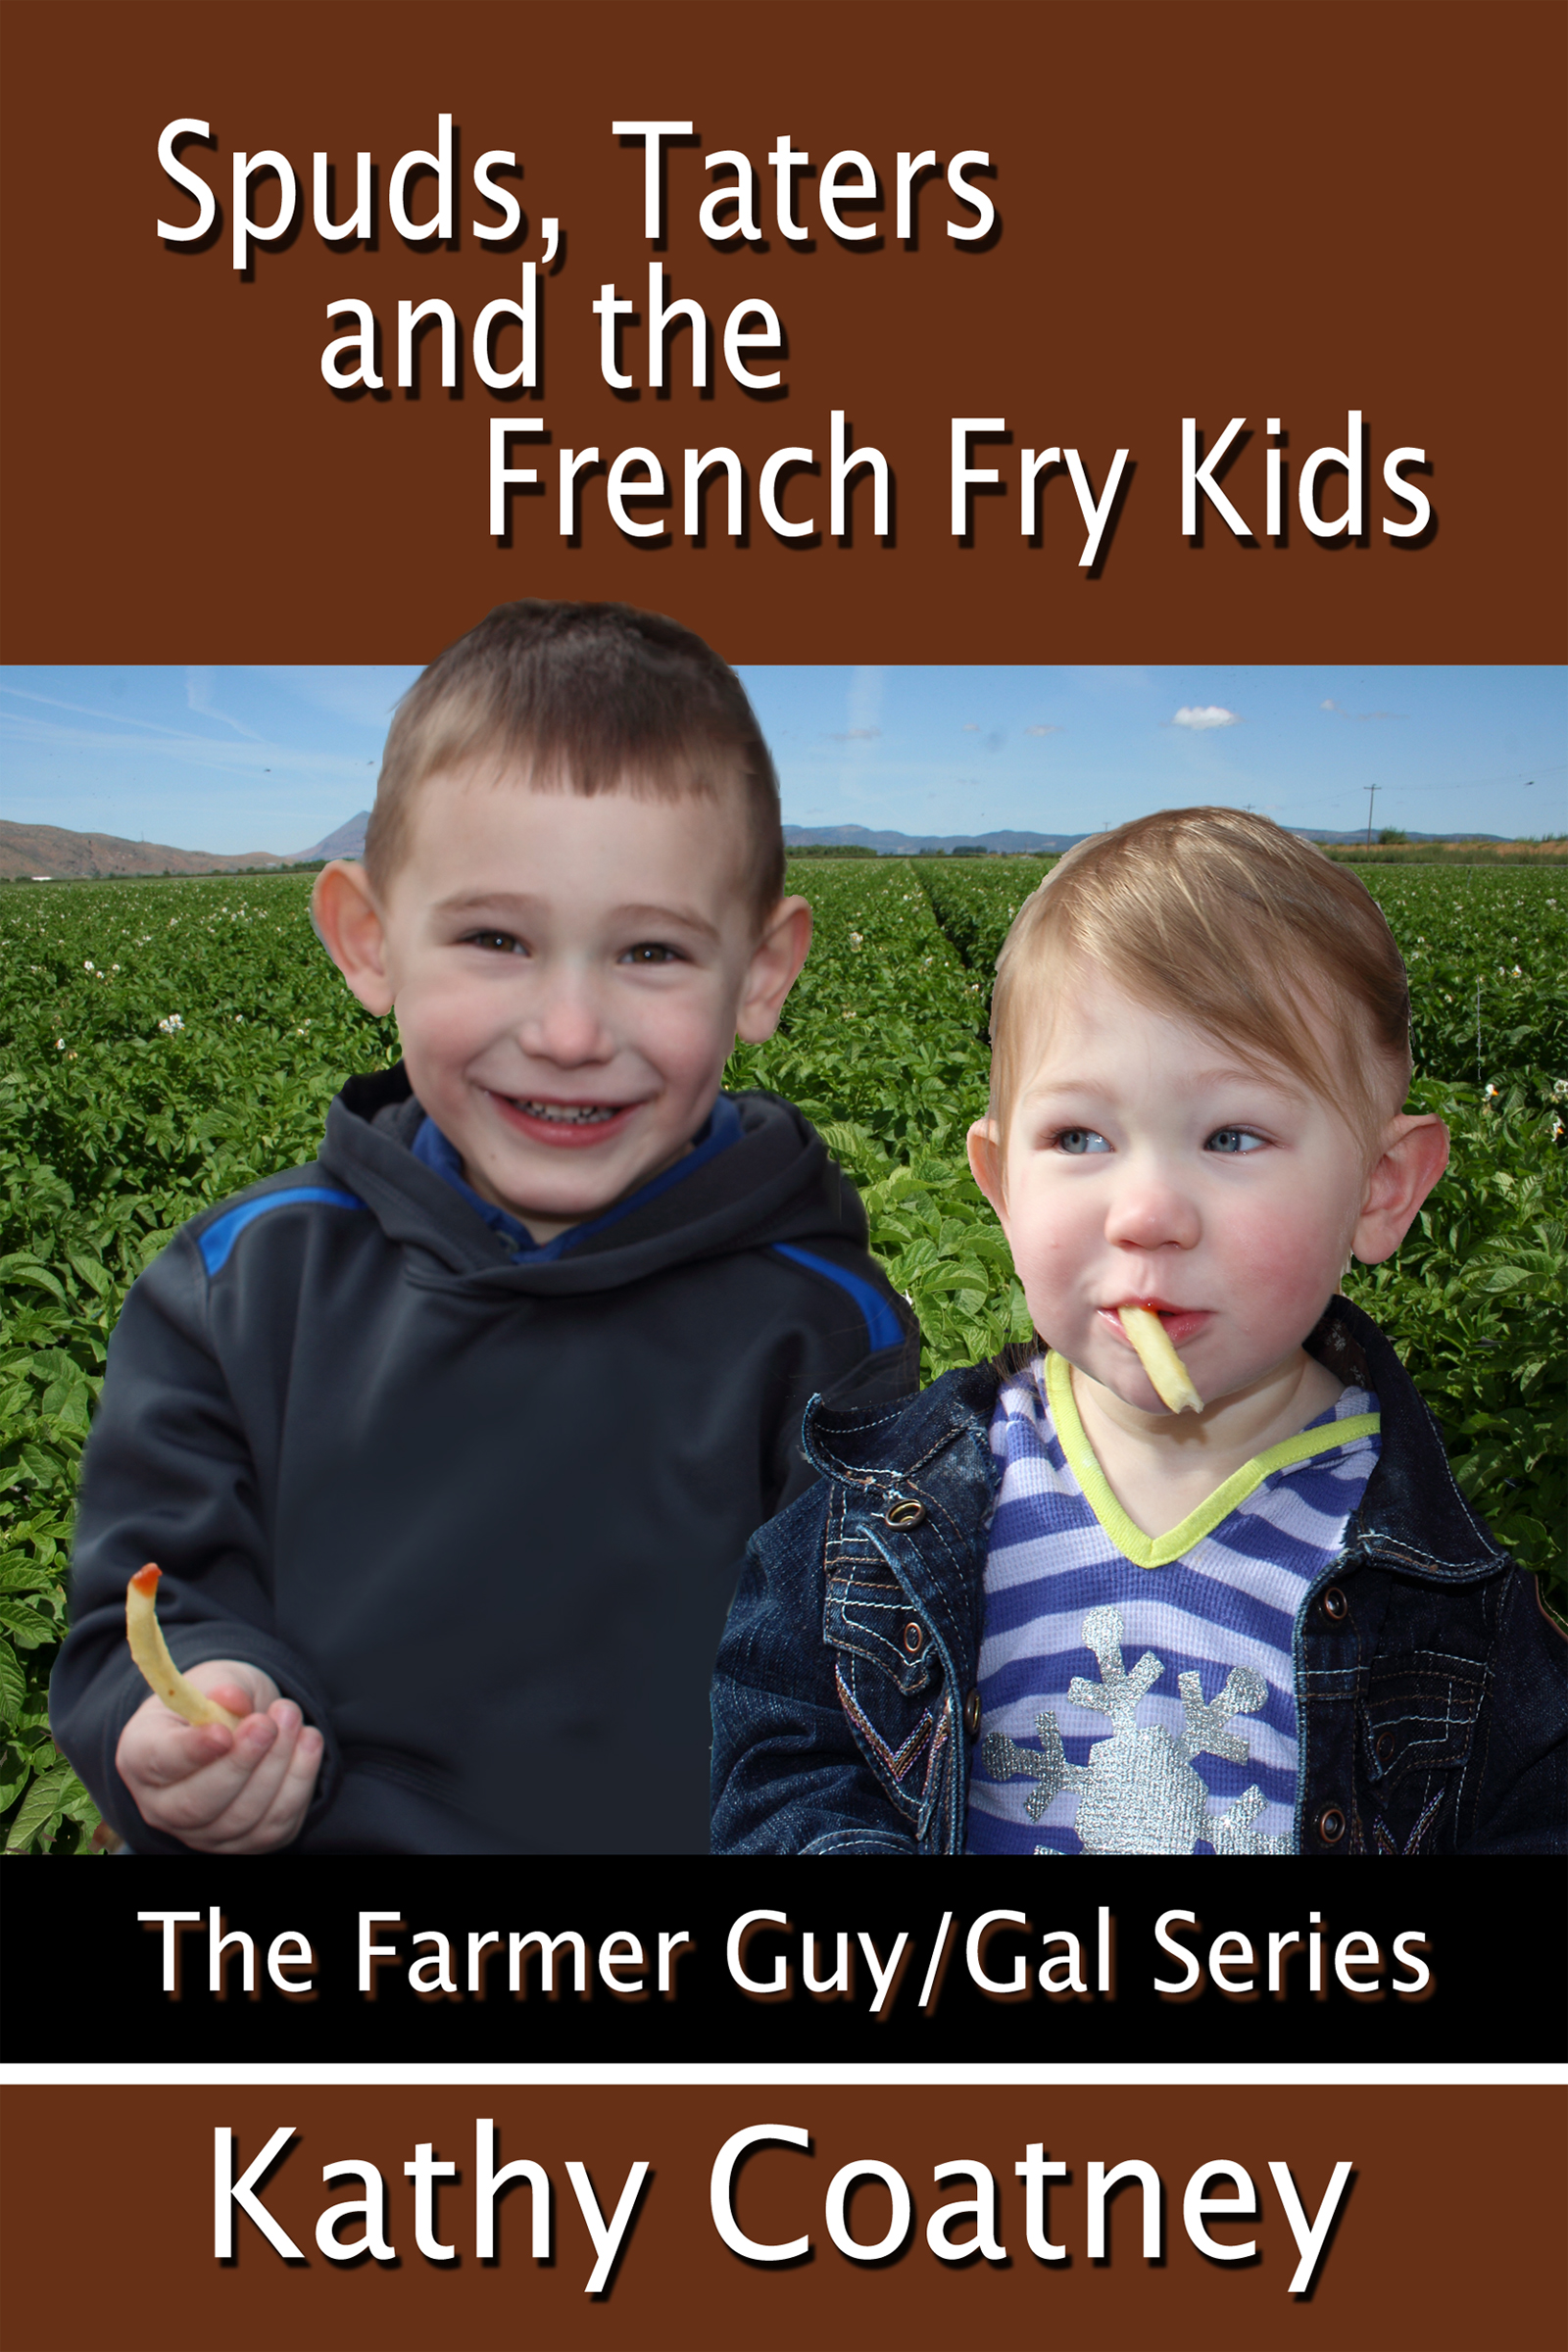 Kathy Coatney - Spuds, Taters and the French Fry Kids